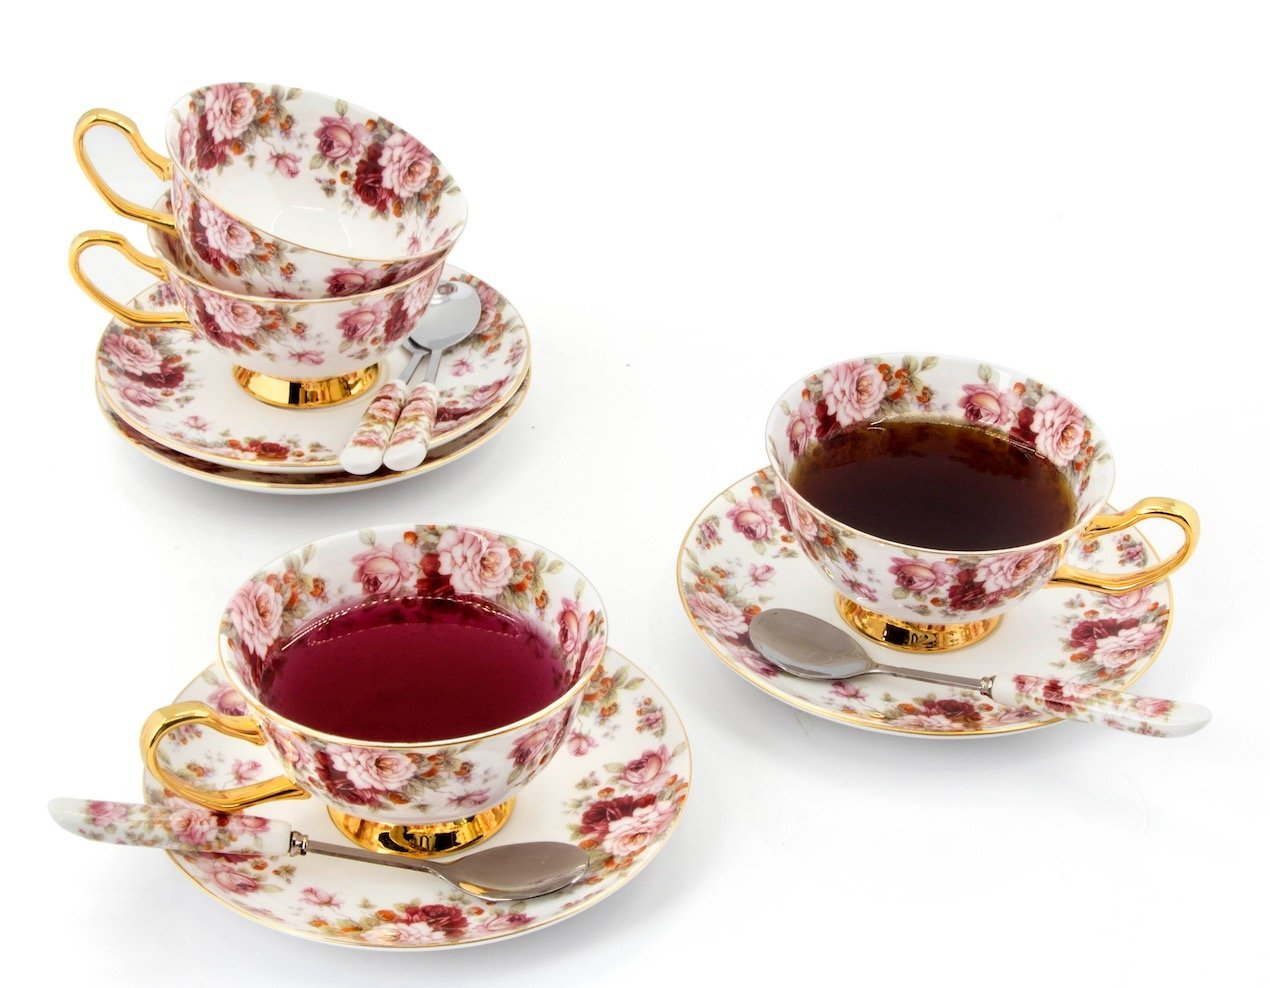 Porcelain Tea Cup and Saucer Coffee Cup Set with Saucer and Spoon 8 oz Set of 4 (Rose & Strawberry)